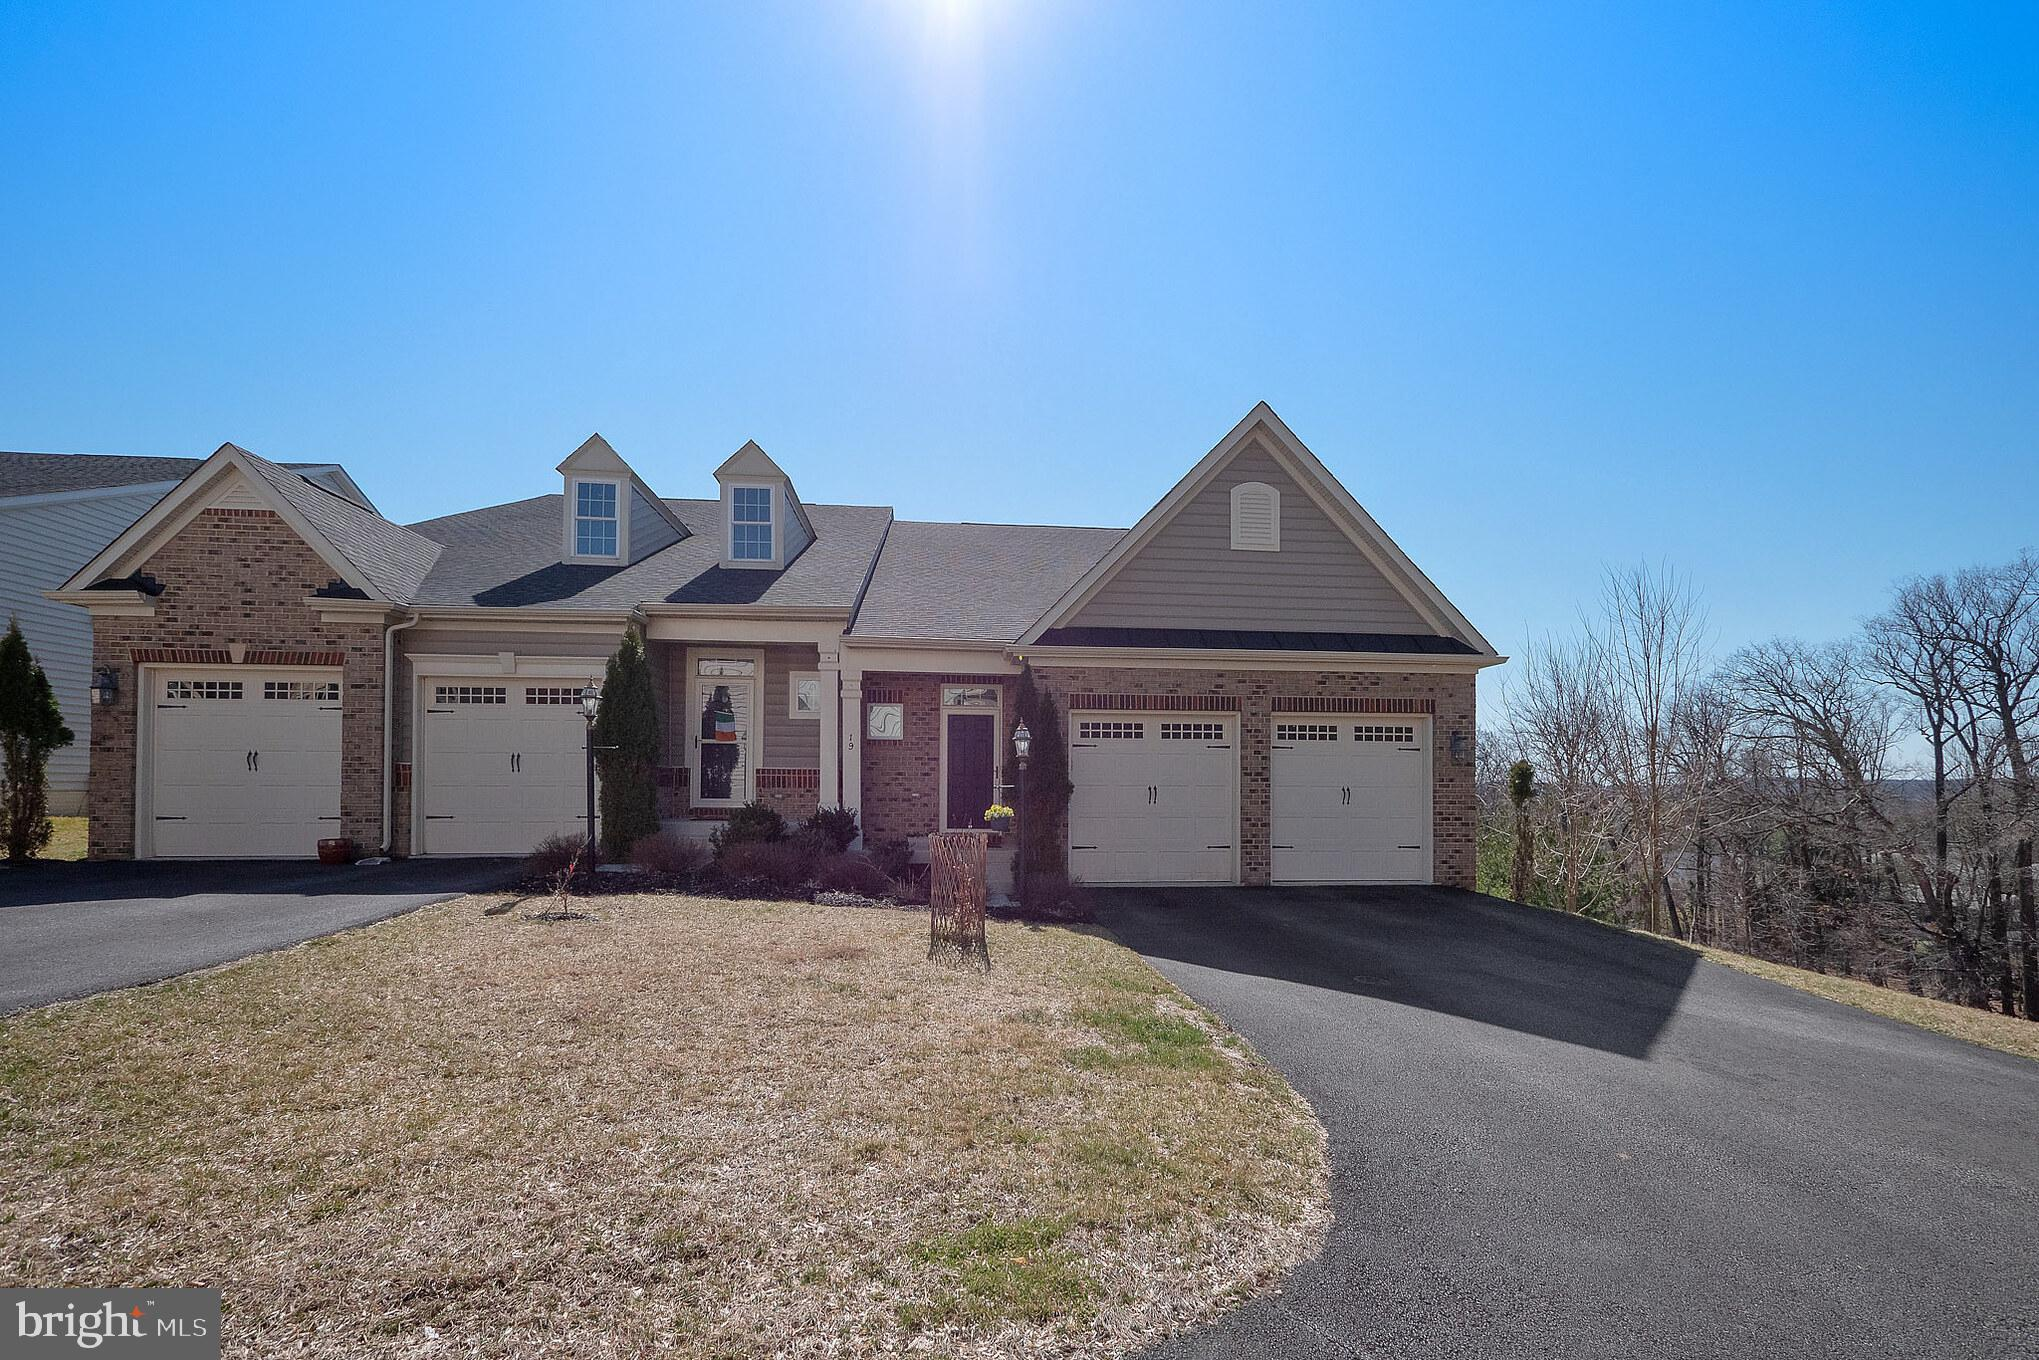 19 HOLLY CREST DRIVE, LUTHERVILLE TIMONIUM, MD 21093